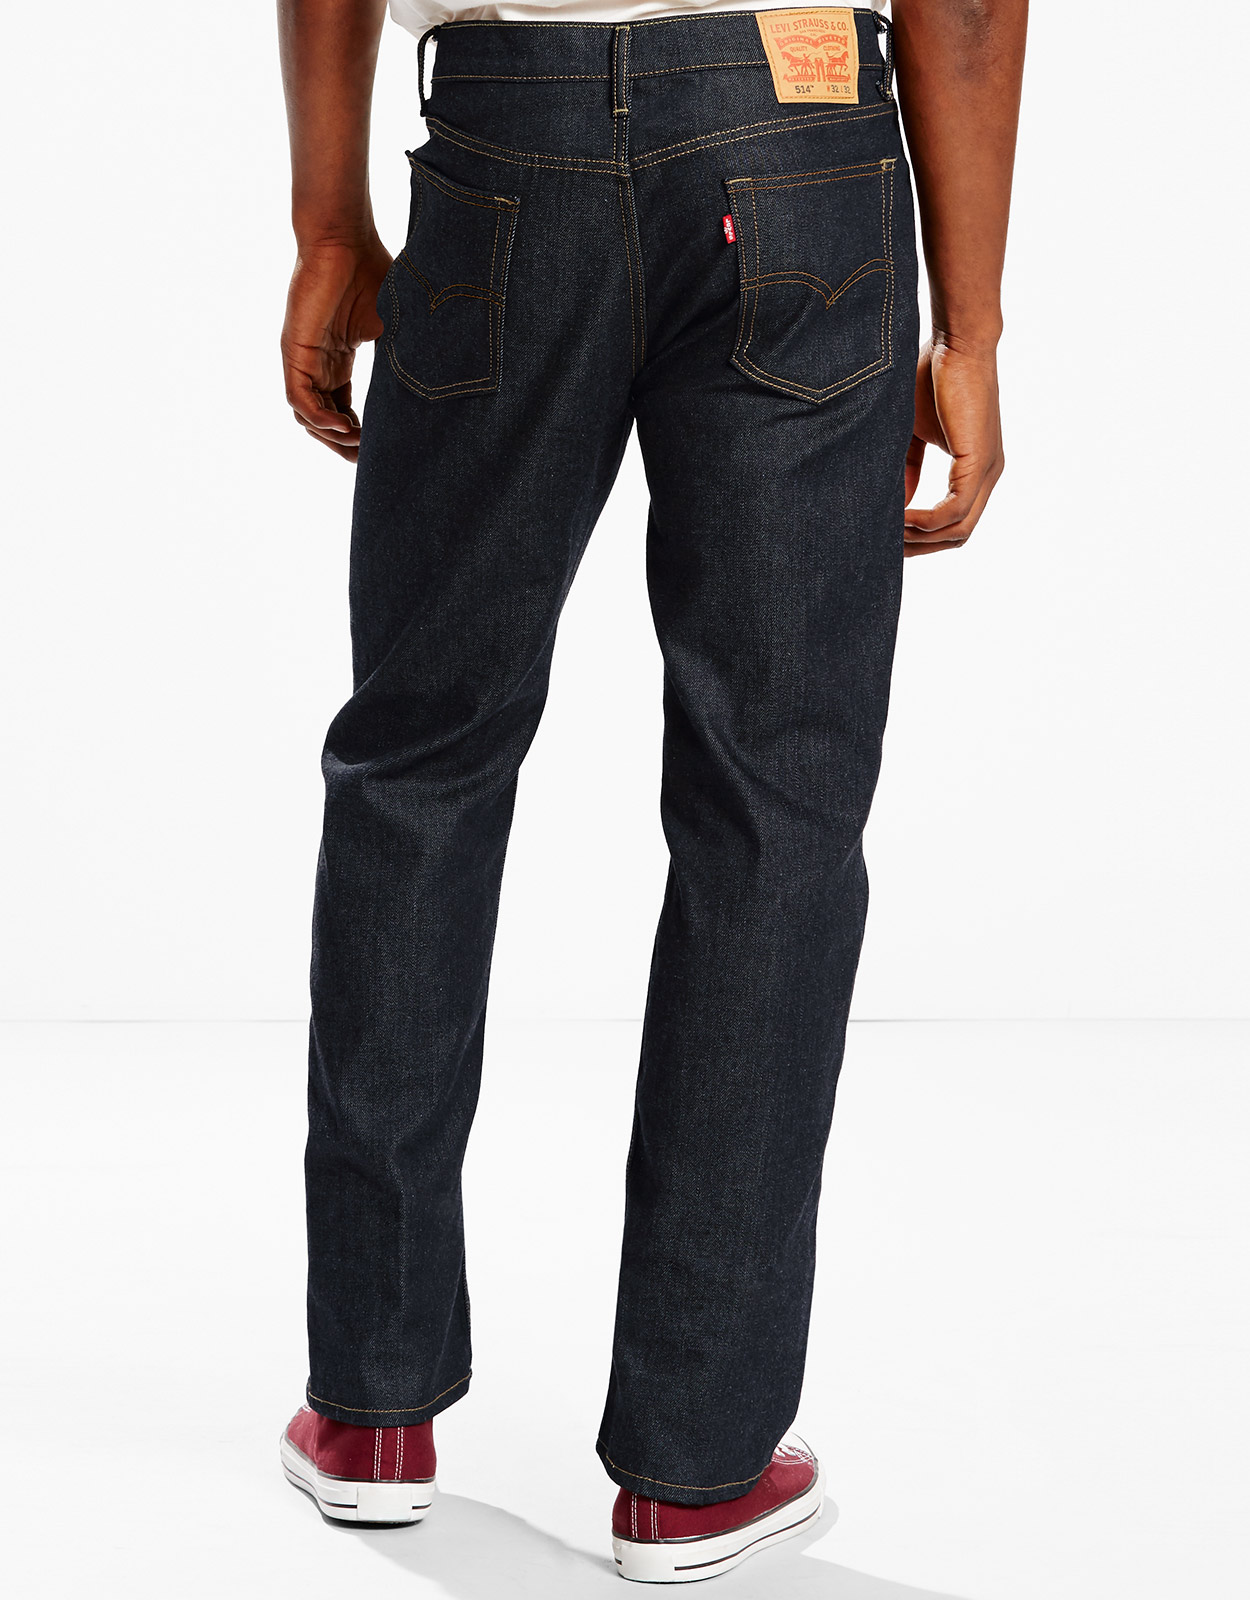 Levi's Men's 514 Straight Fit Jeans - Tumbled Rigid